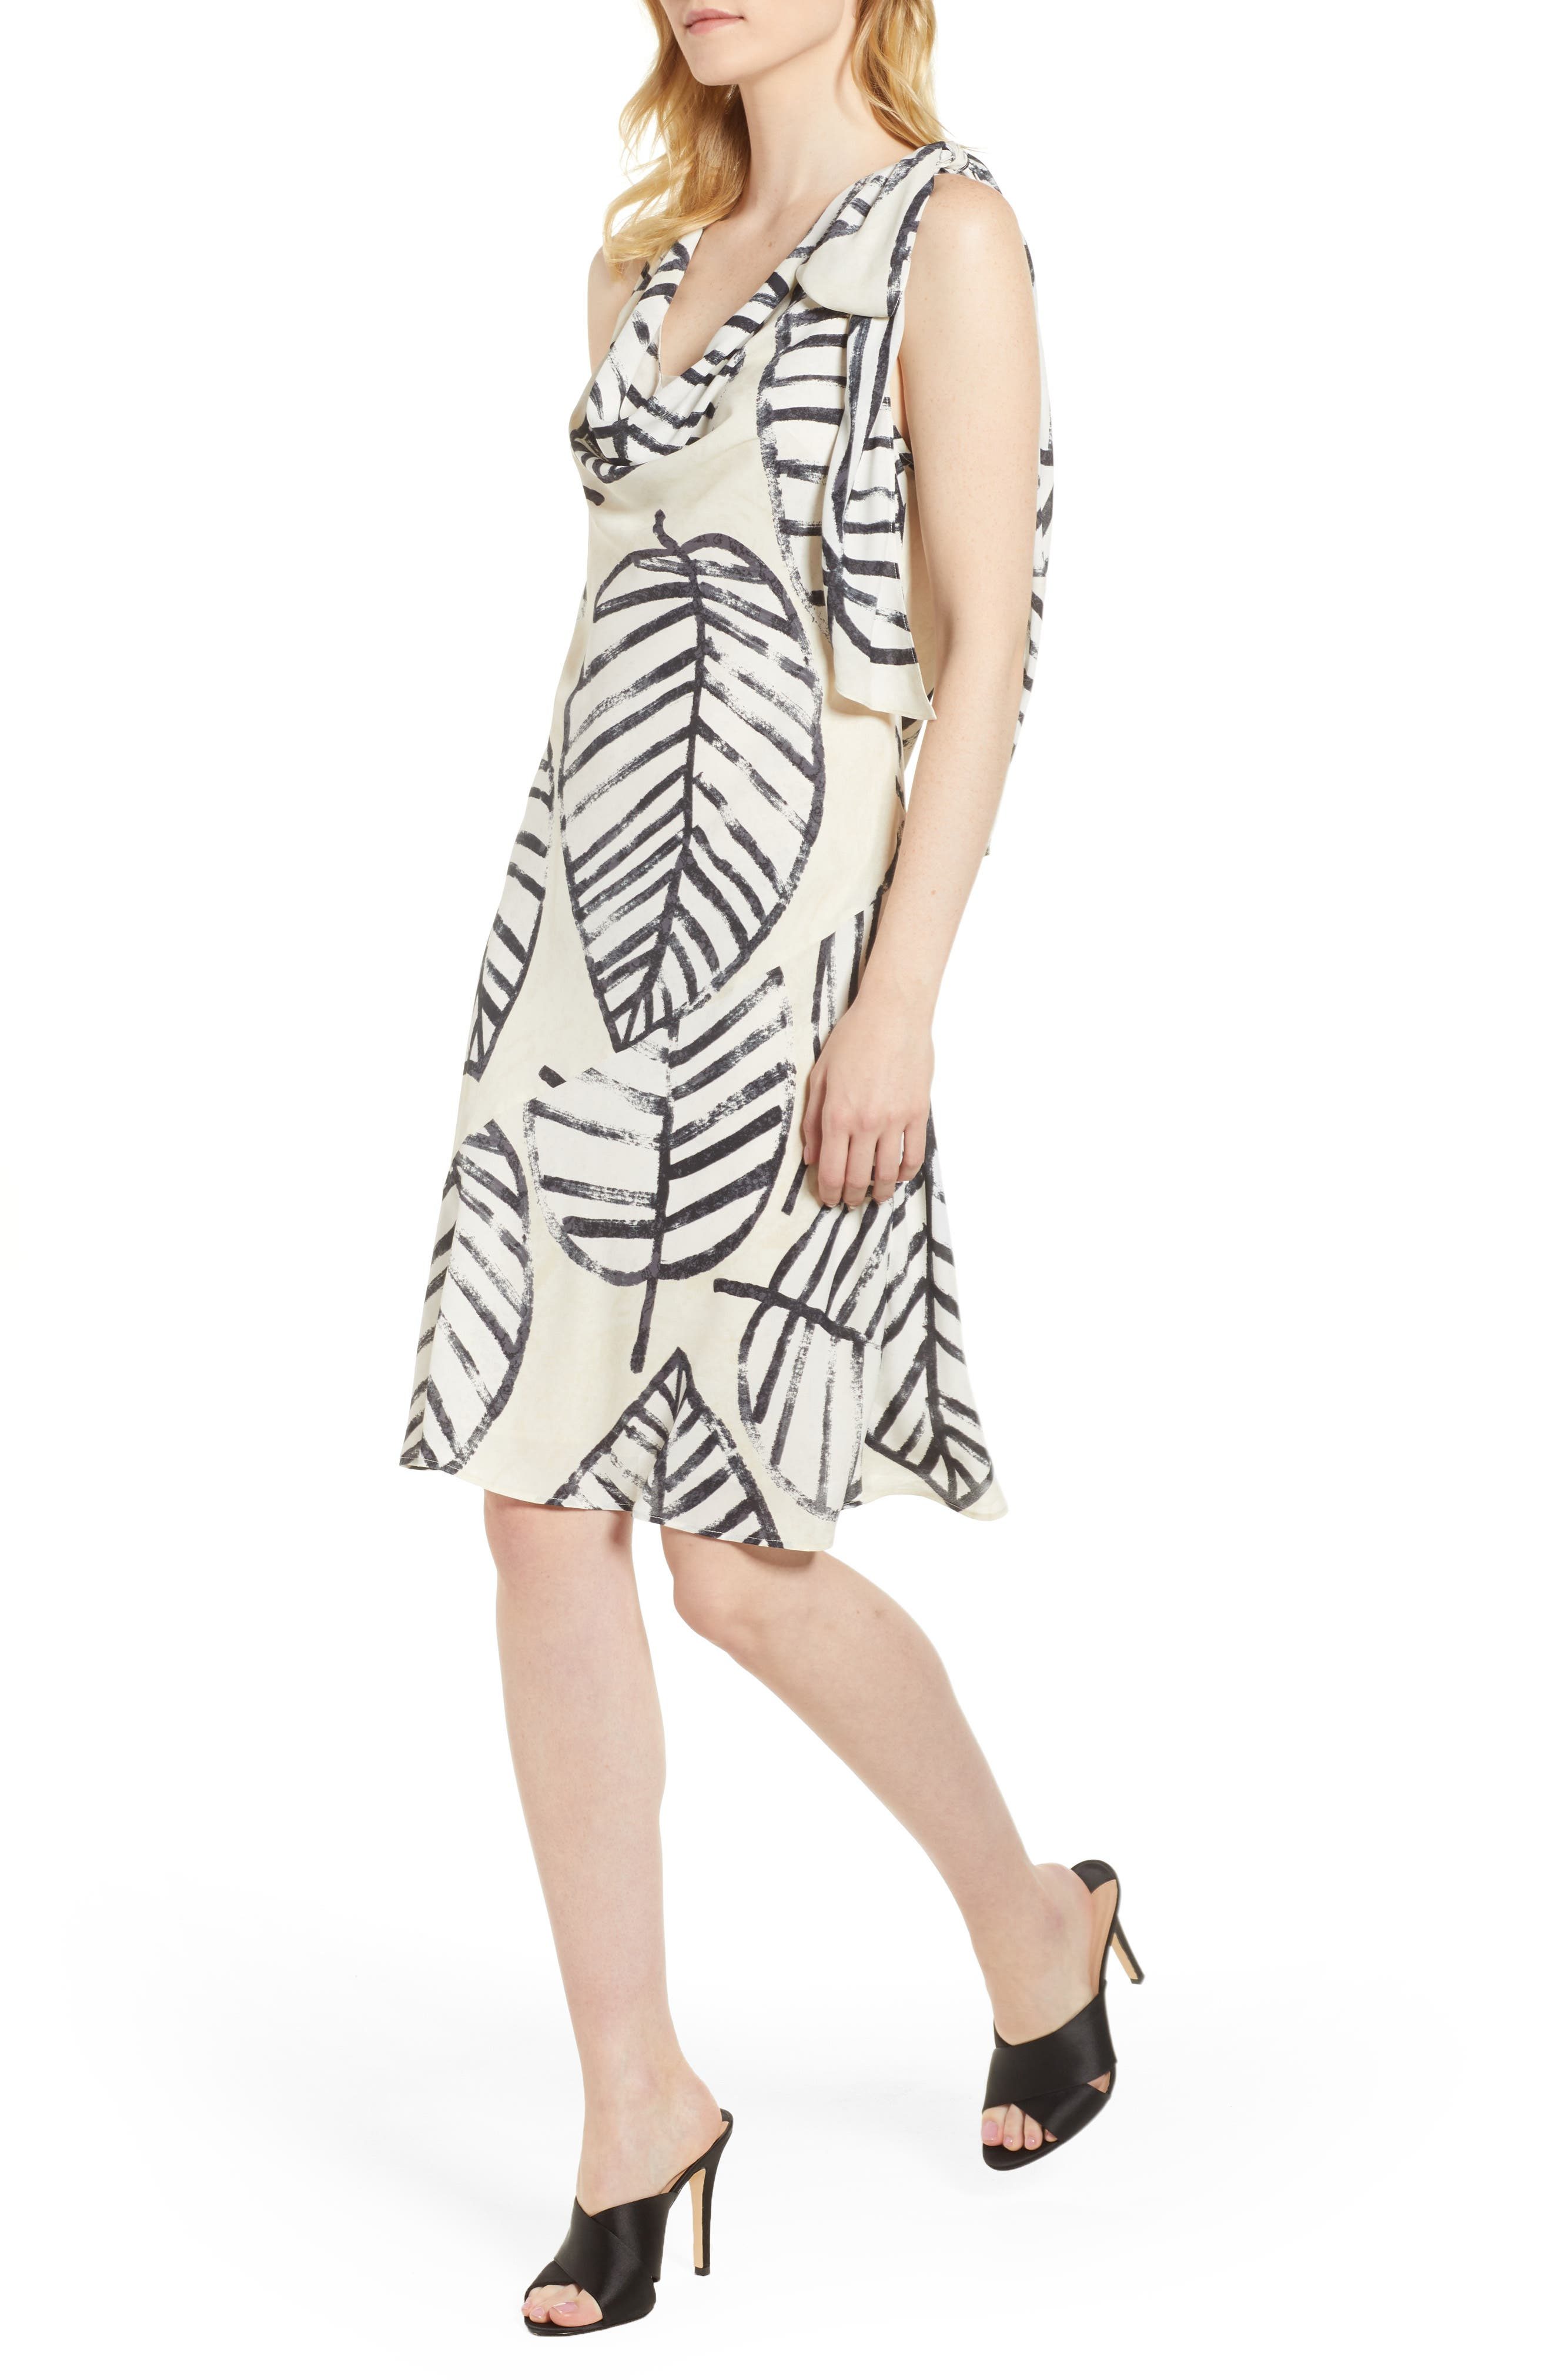 Etched Leaves Tie Dress,                         Main,                         color, Multi